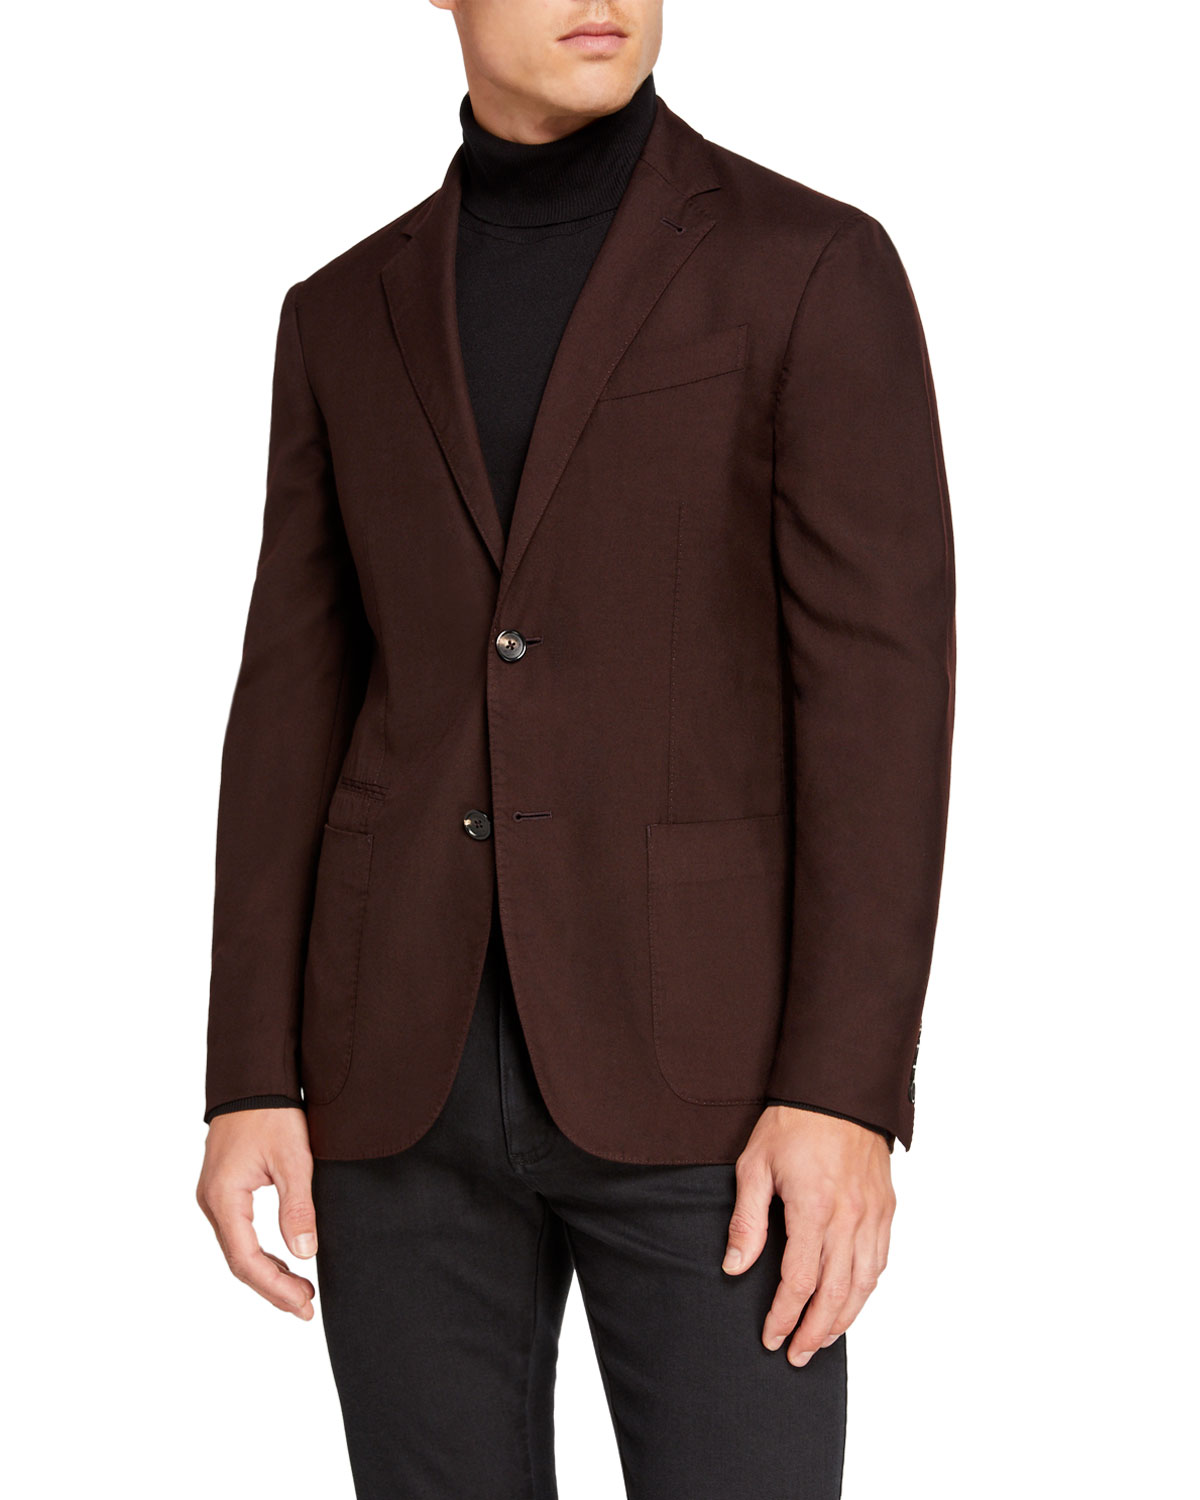 Ermenegildo Zegna Jackets MEN'S CASHMERE/SILK TWO-BUTTON JACKET